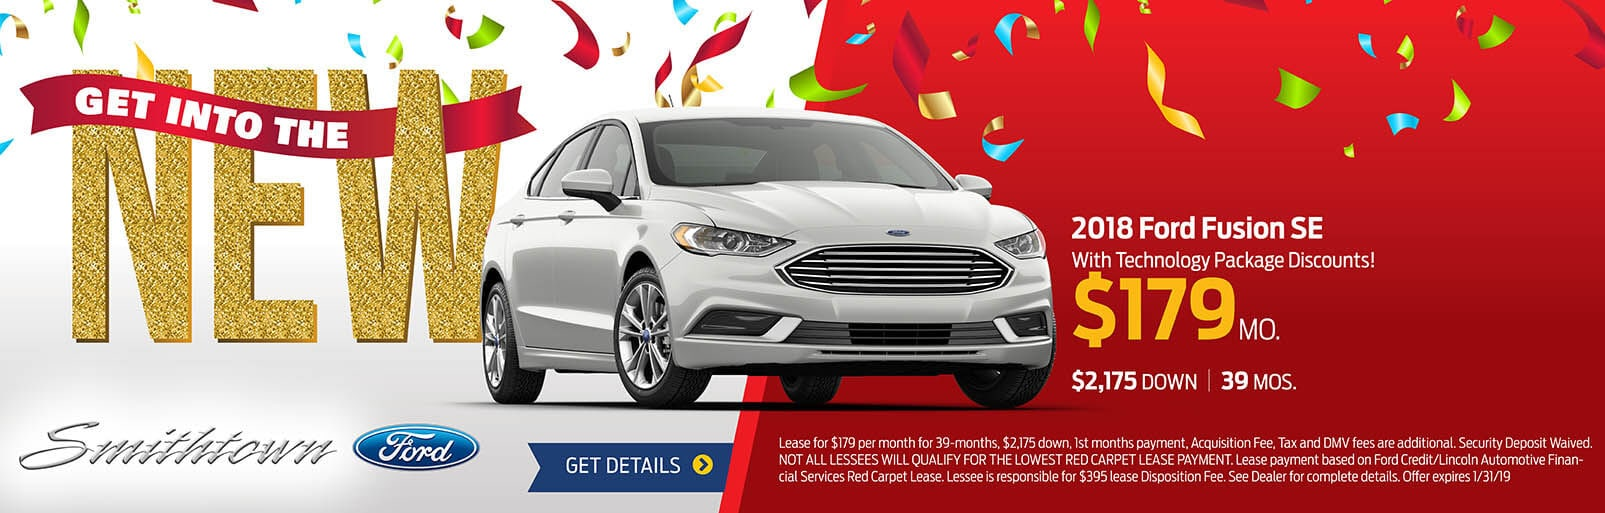 Ford Of Smithtown Ford Dealer In Saint James Ny